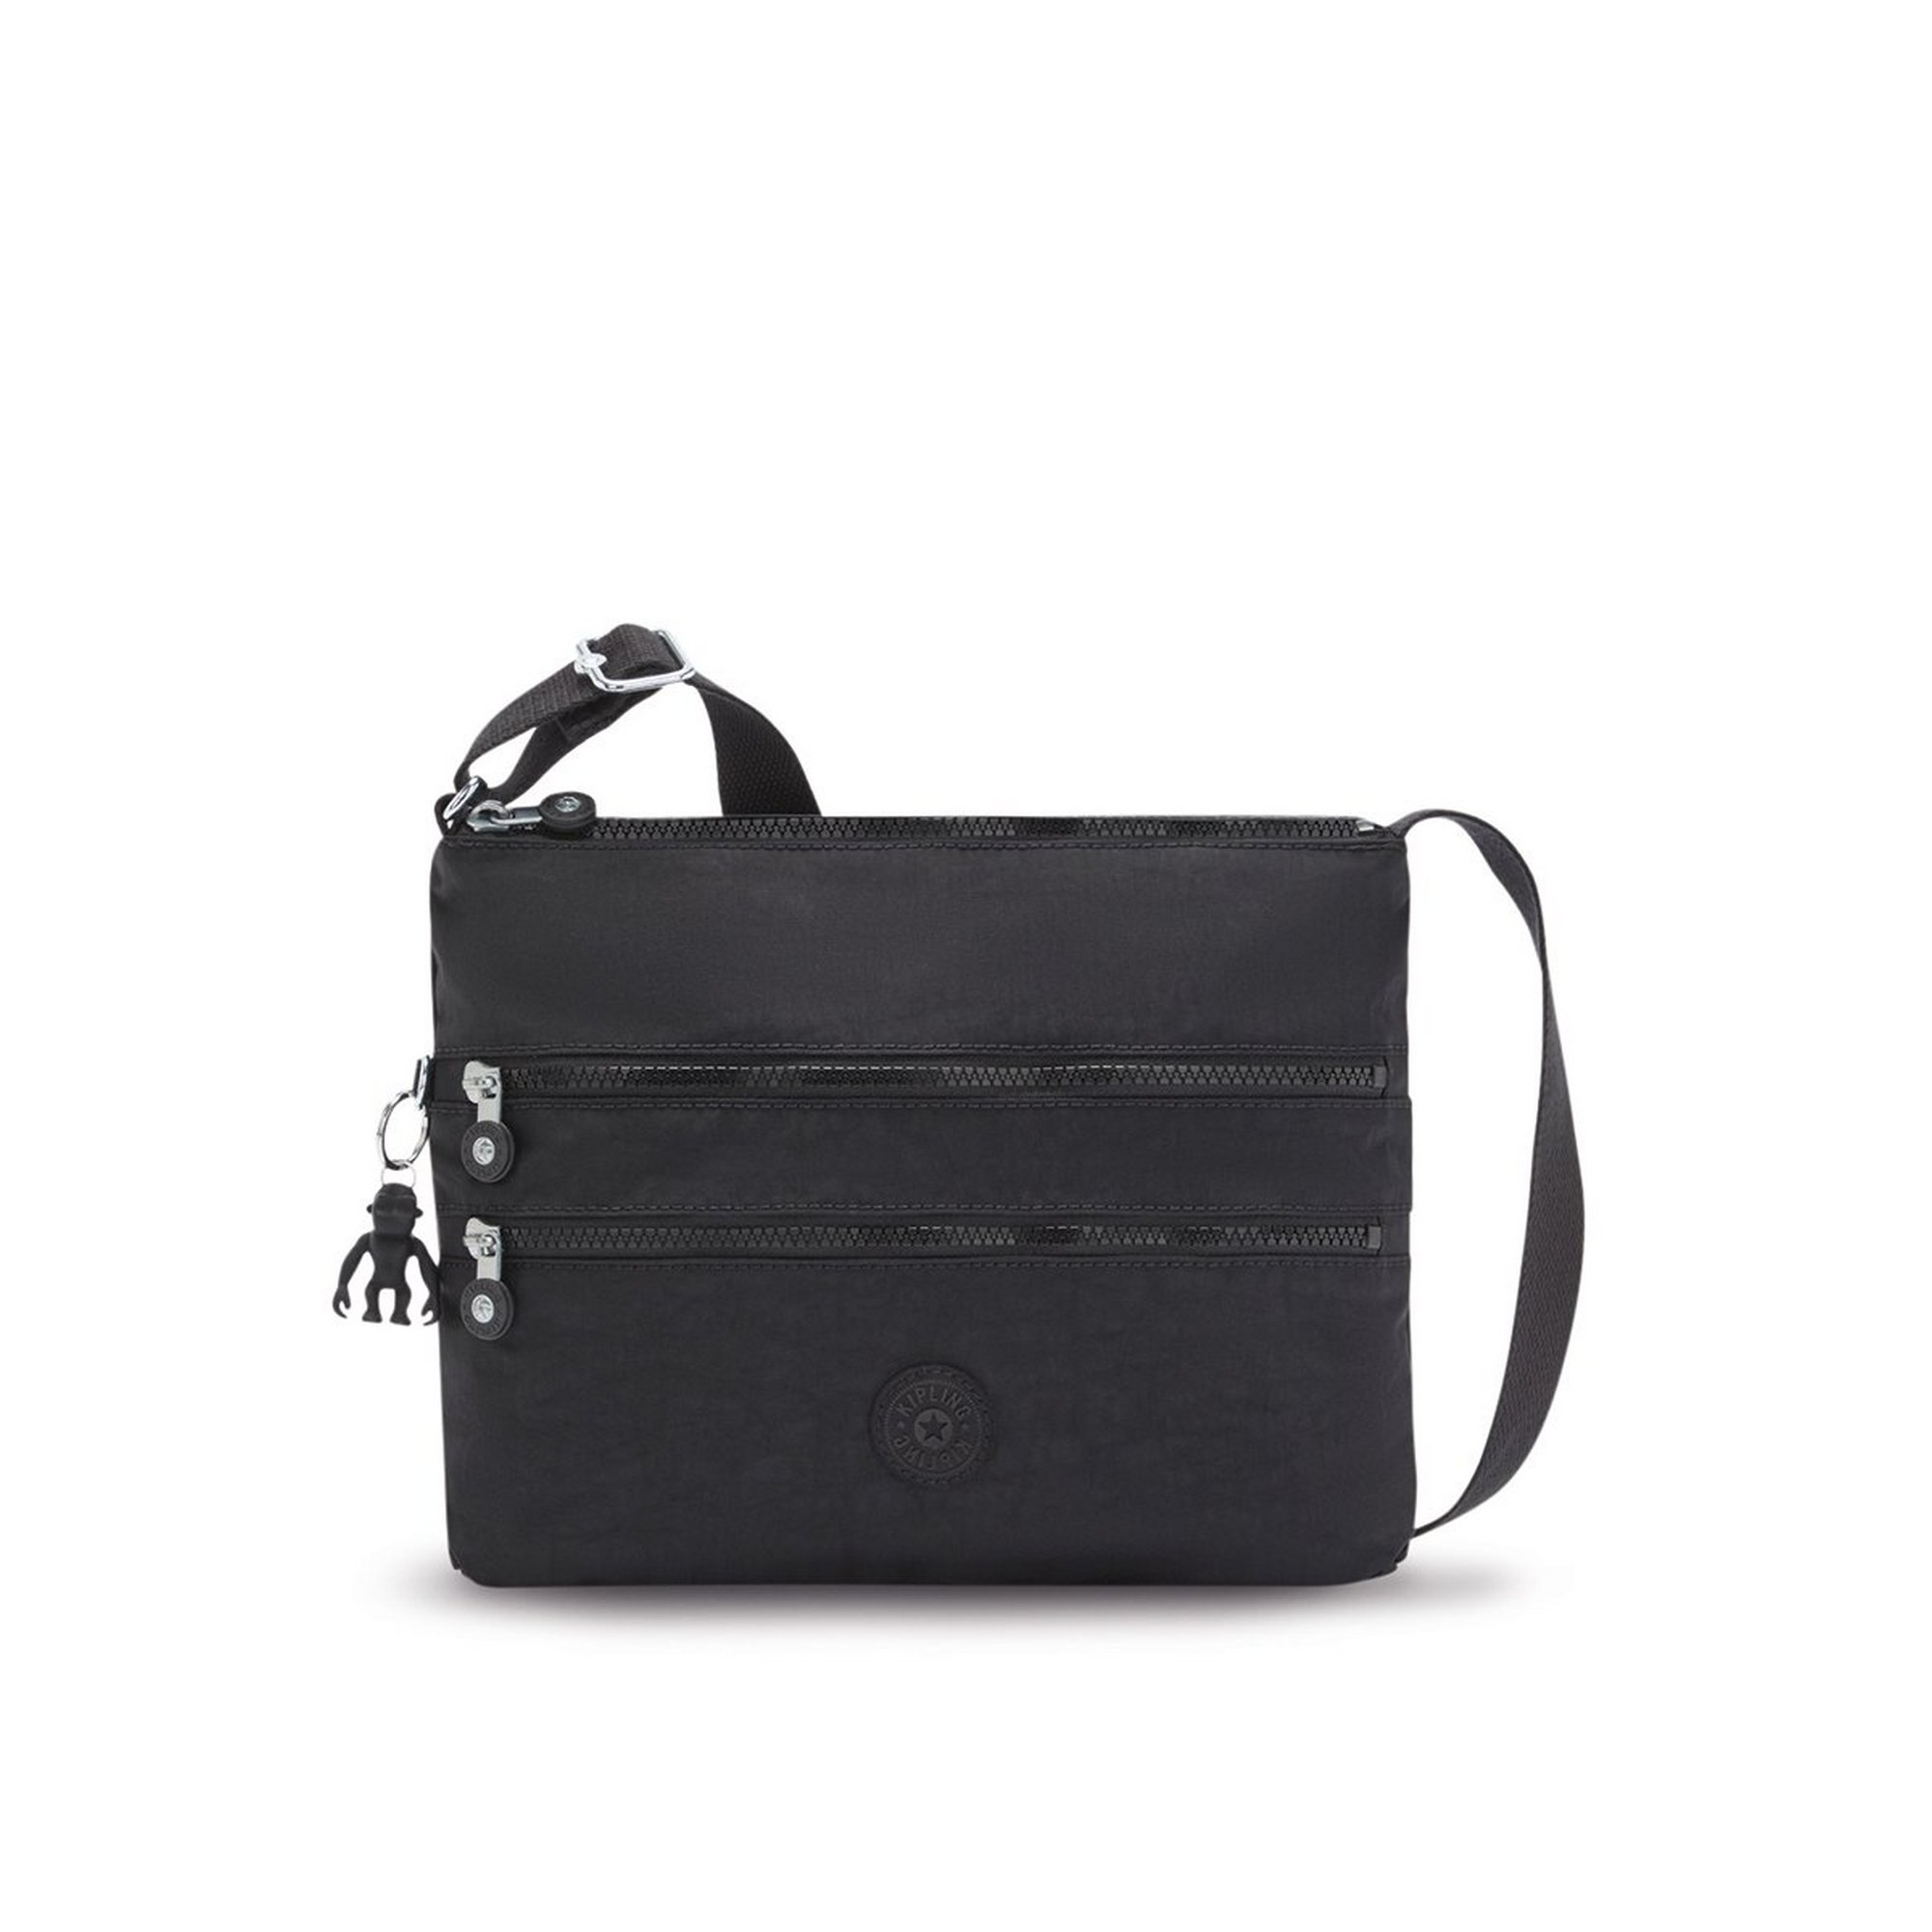 Image of Kipling Alvar Cross Body Black Bag